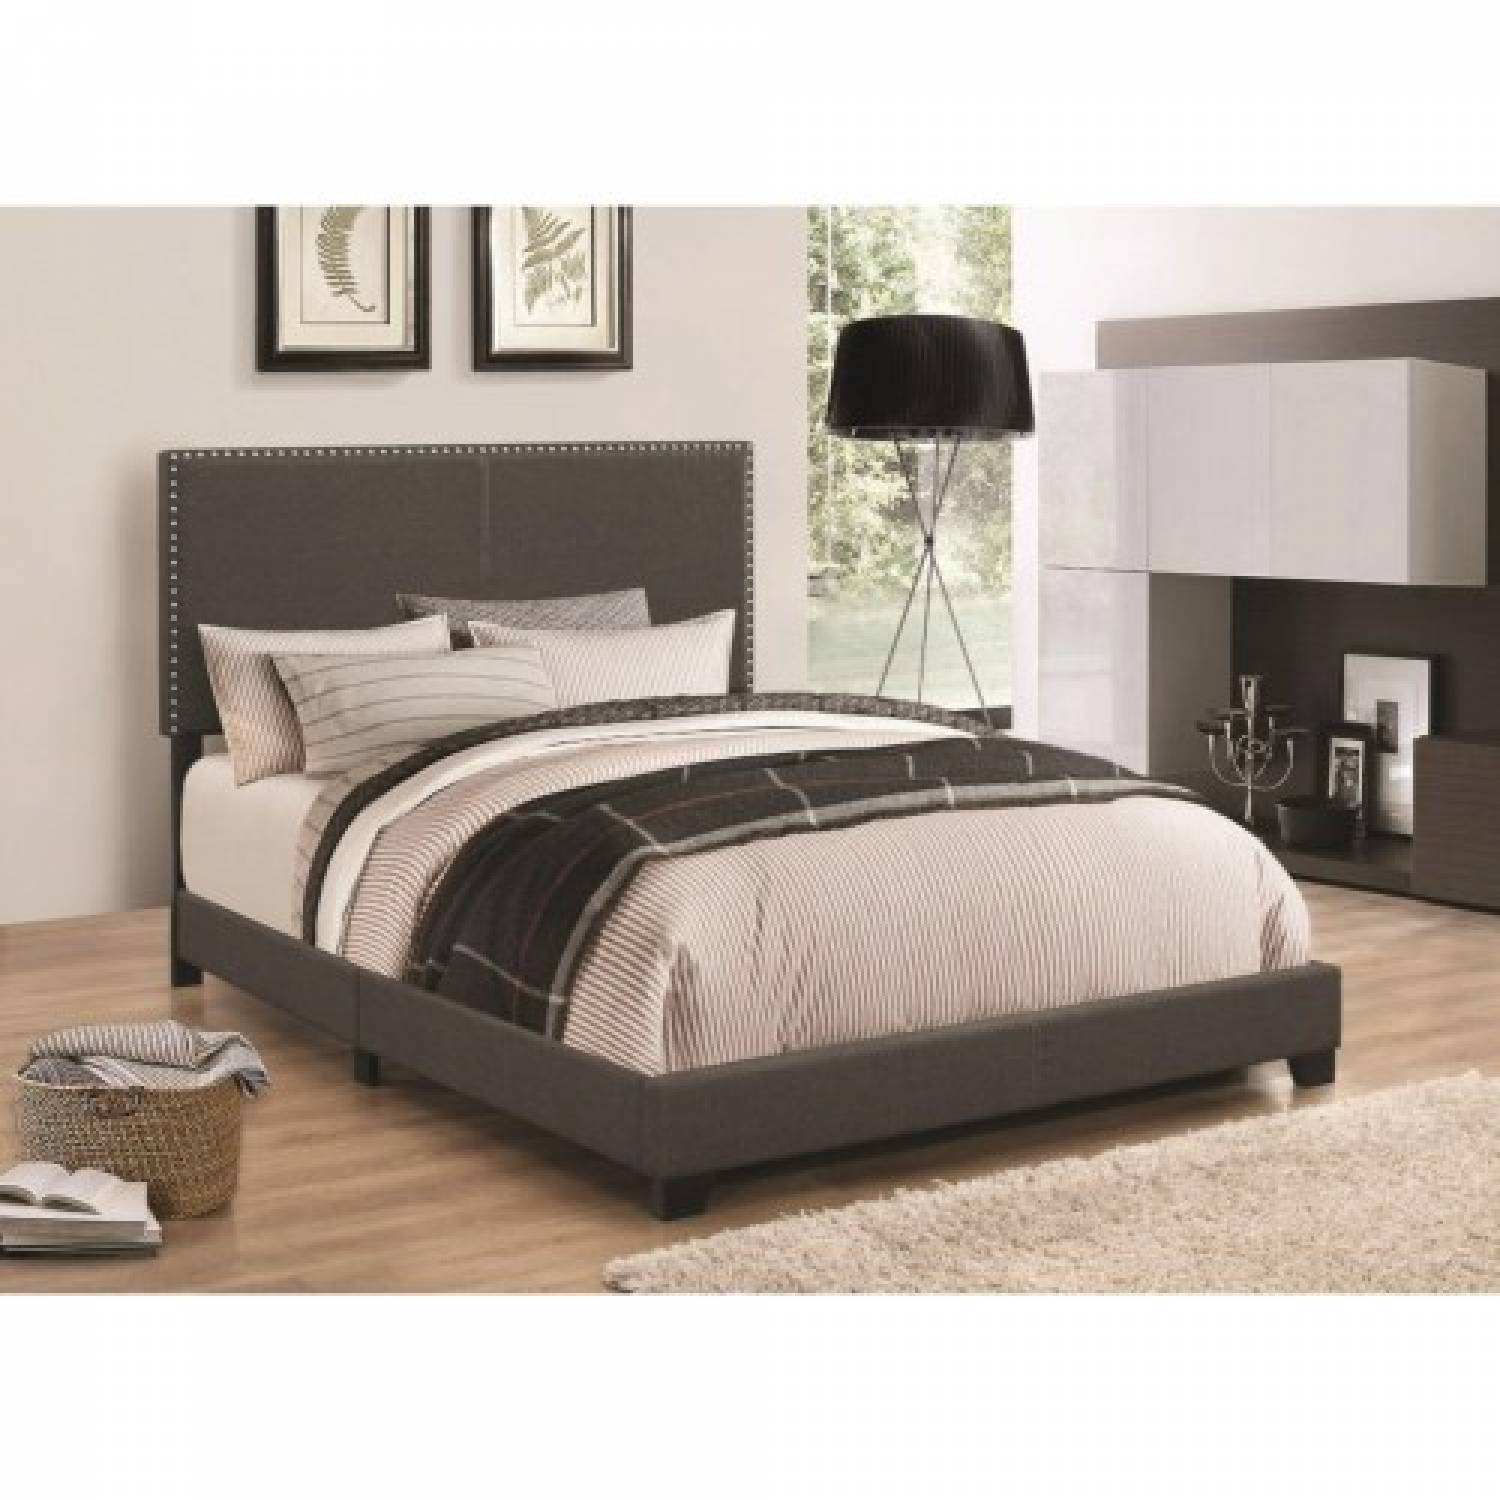 Ashley Furniture Orange County Ca: Upholstered Beds Upholstered Queen Bed With Nailhead Trim